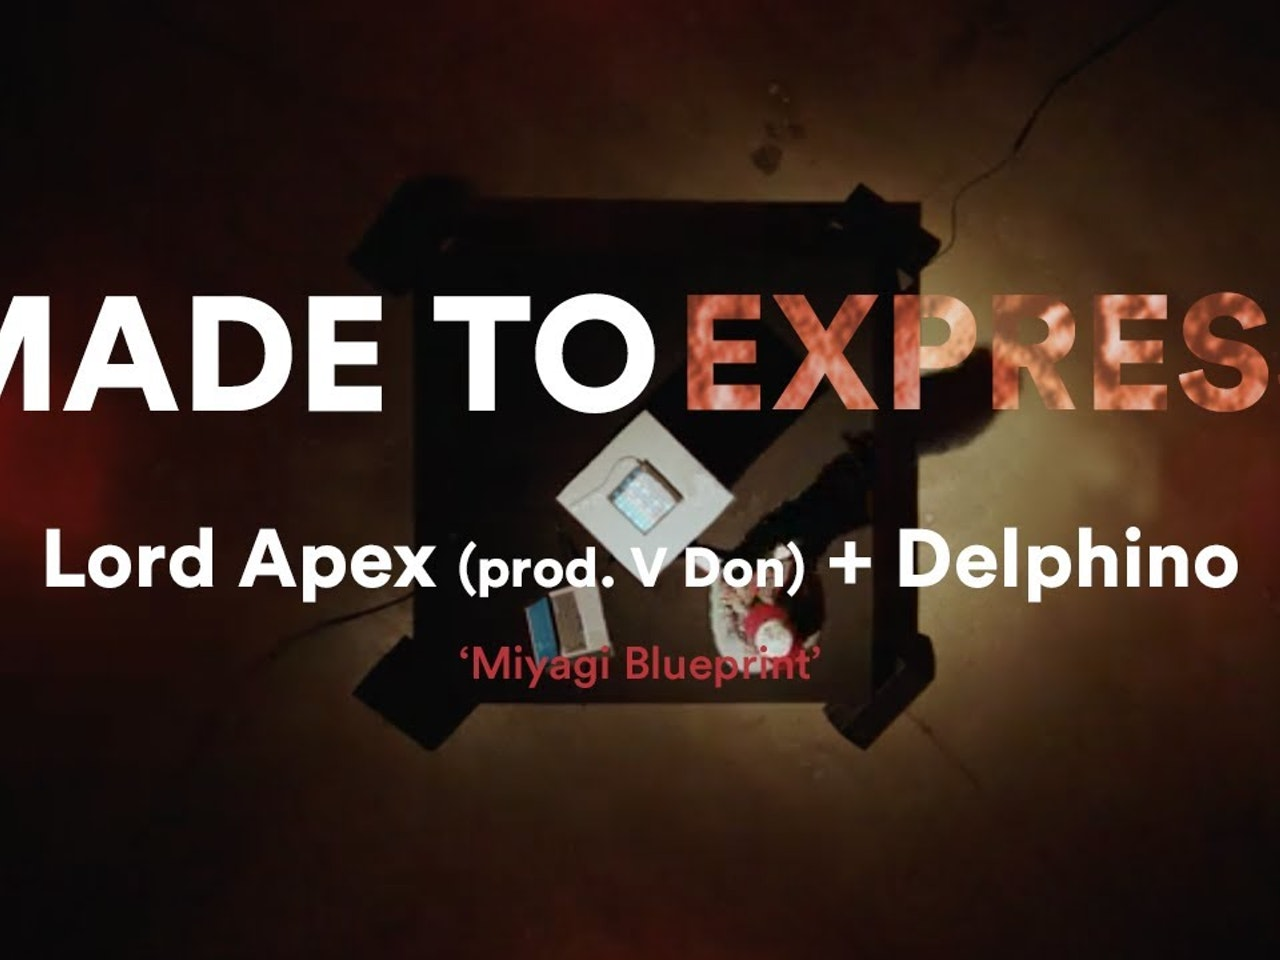 Lord Apex + Delphino 'Miyagi Blueprint' - Made to Express // Novation